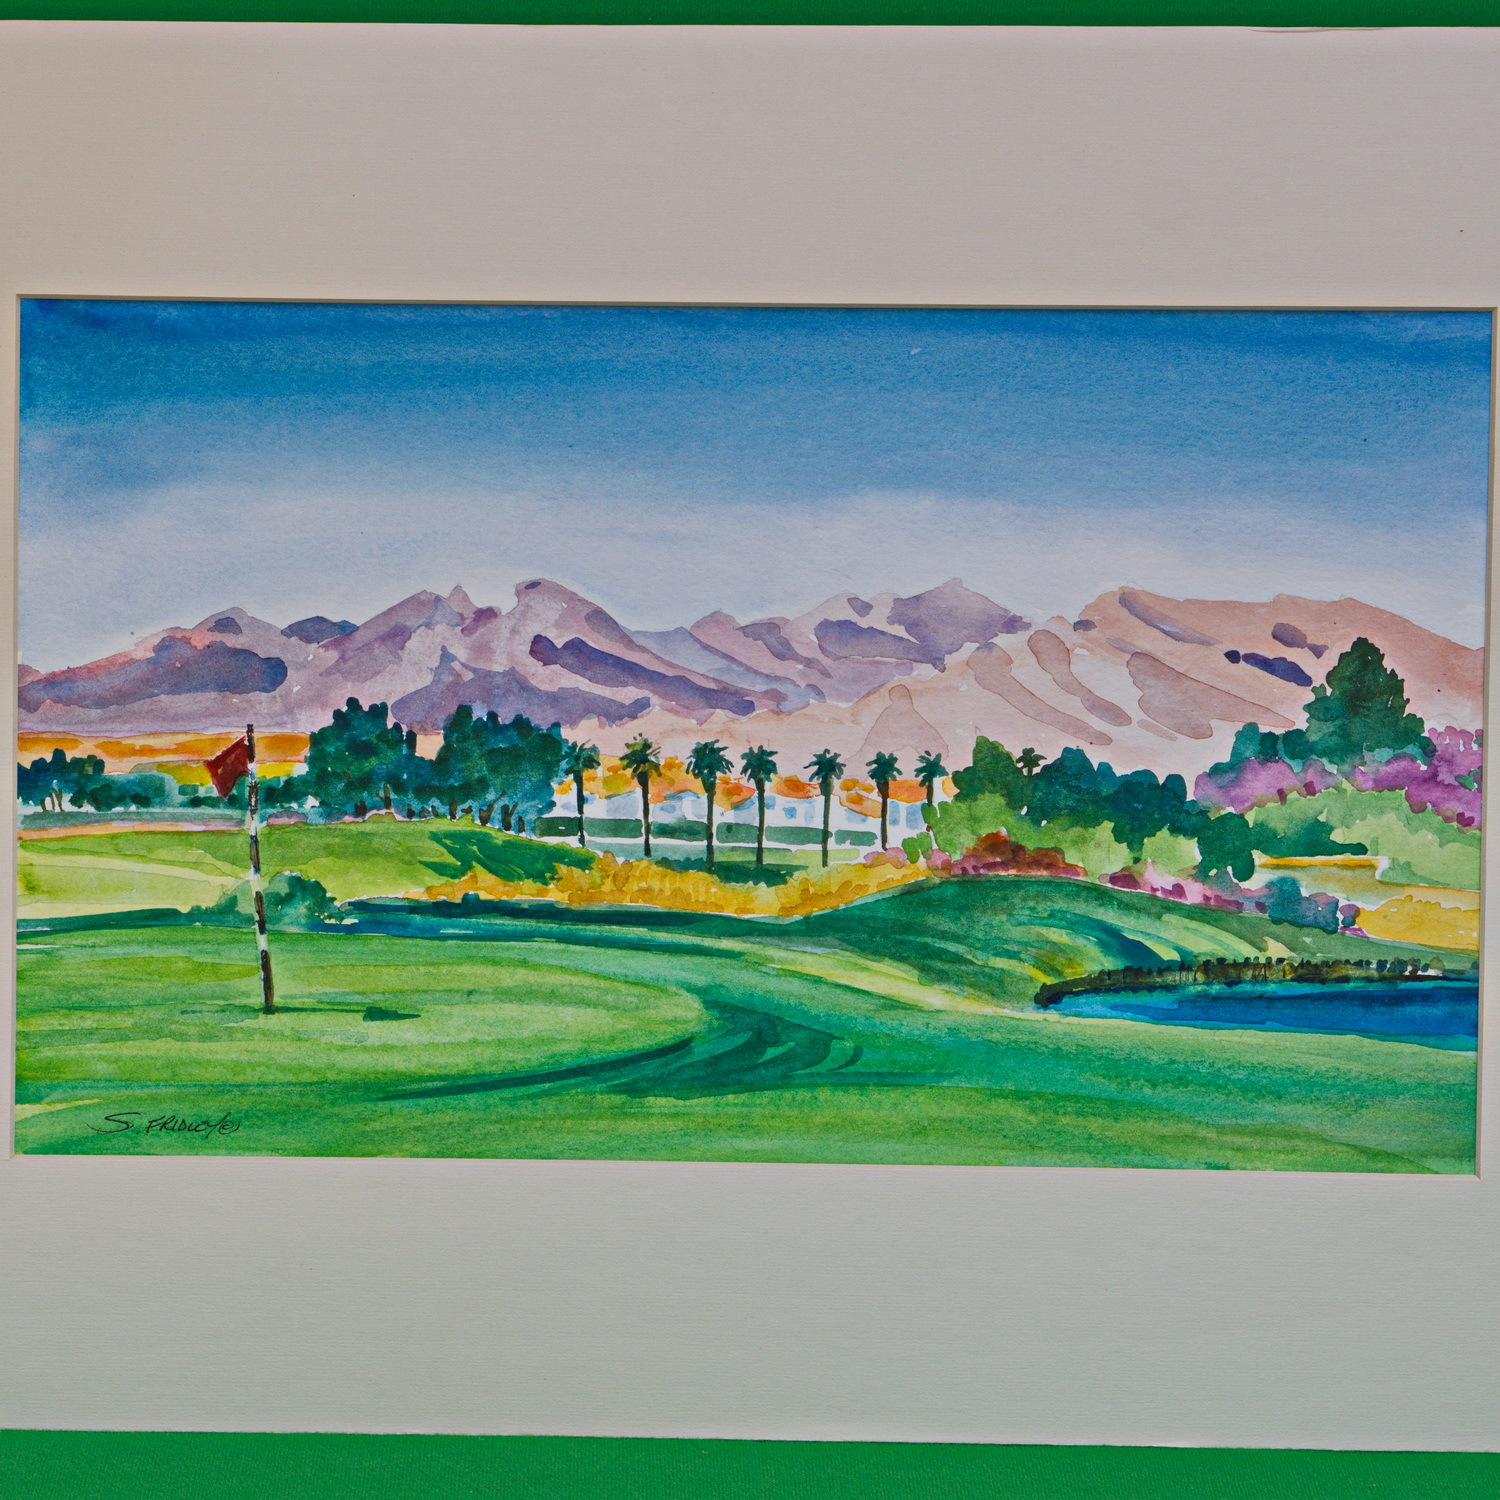 Large (20 X 14) Signed Original Watercolor Painting By Artist Susan Fridley